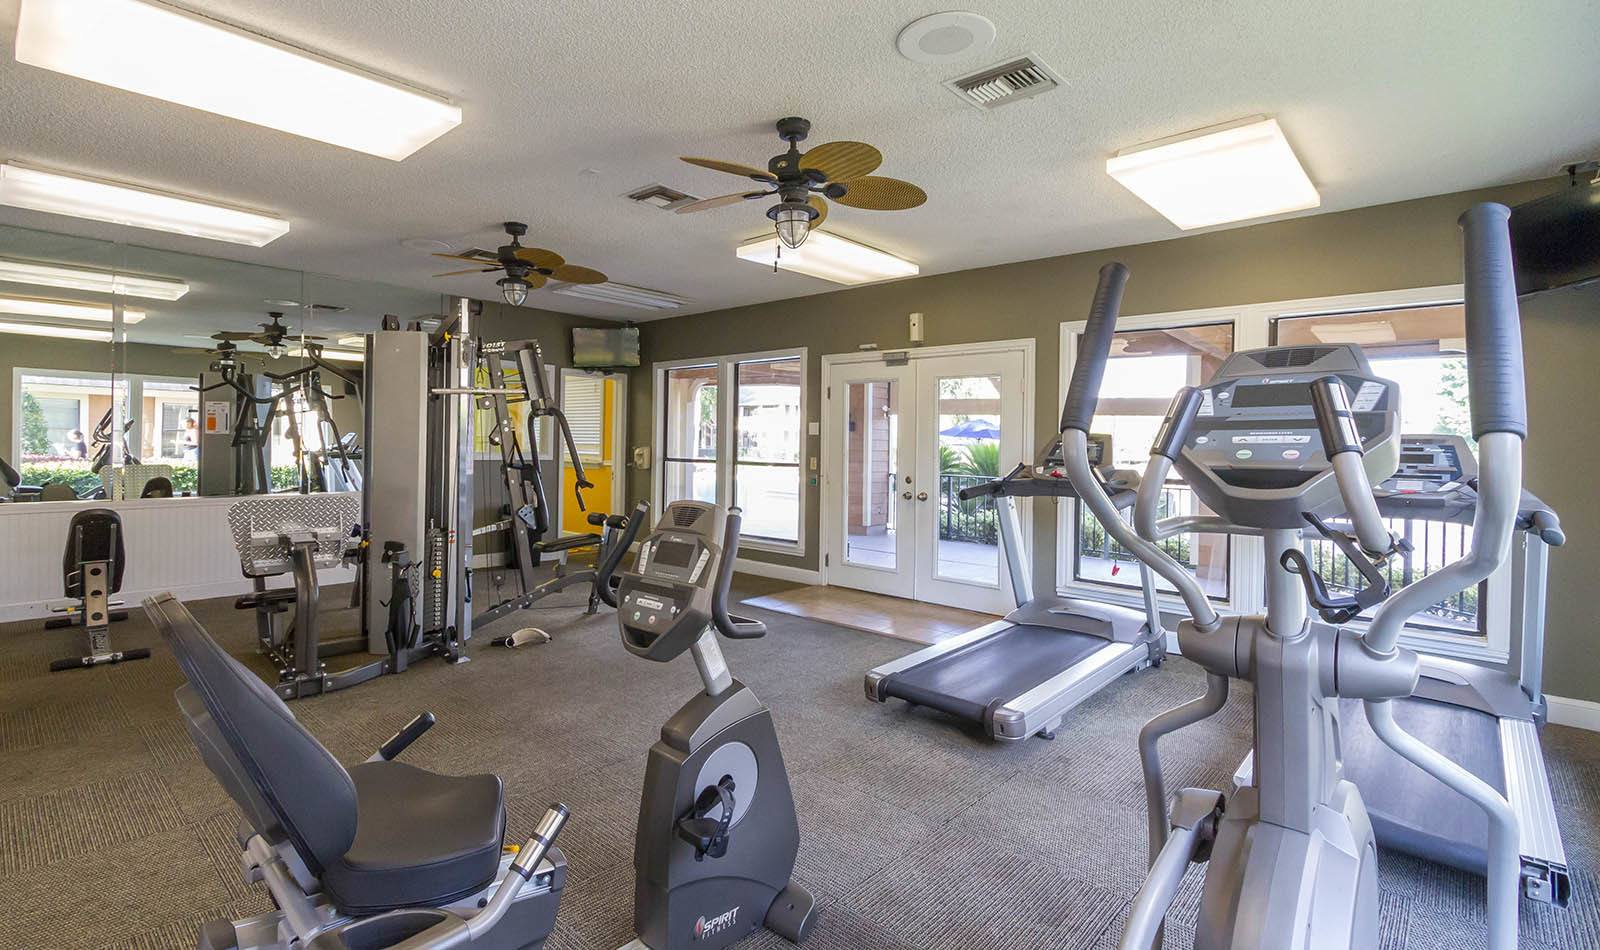 Fitness center at apartments in Orange Park, FL